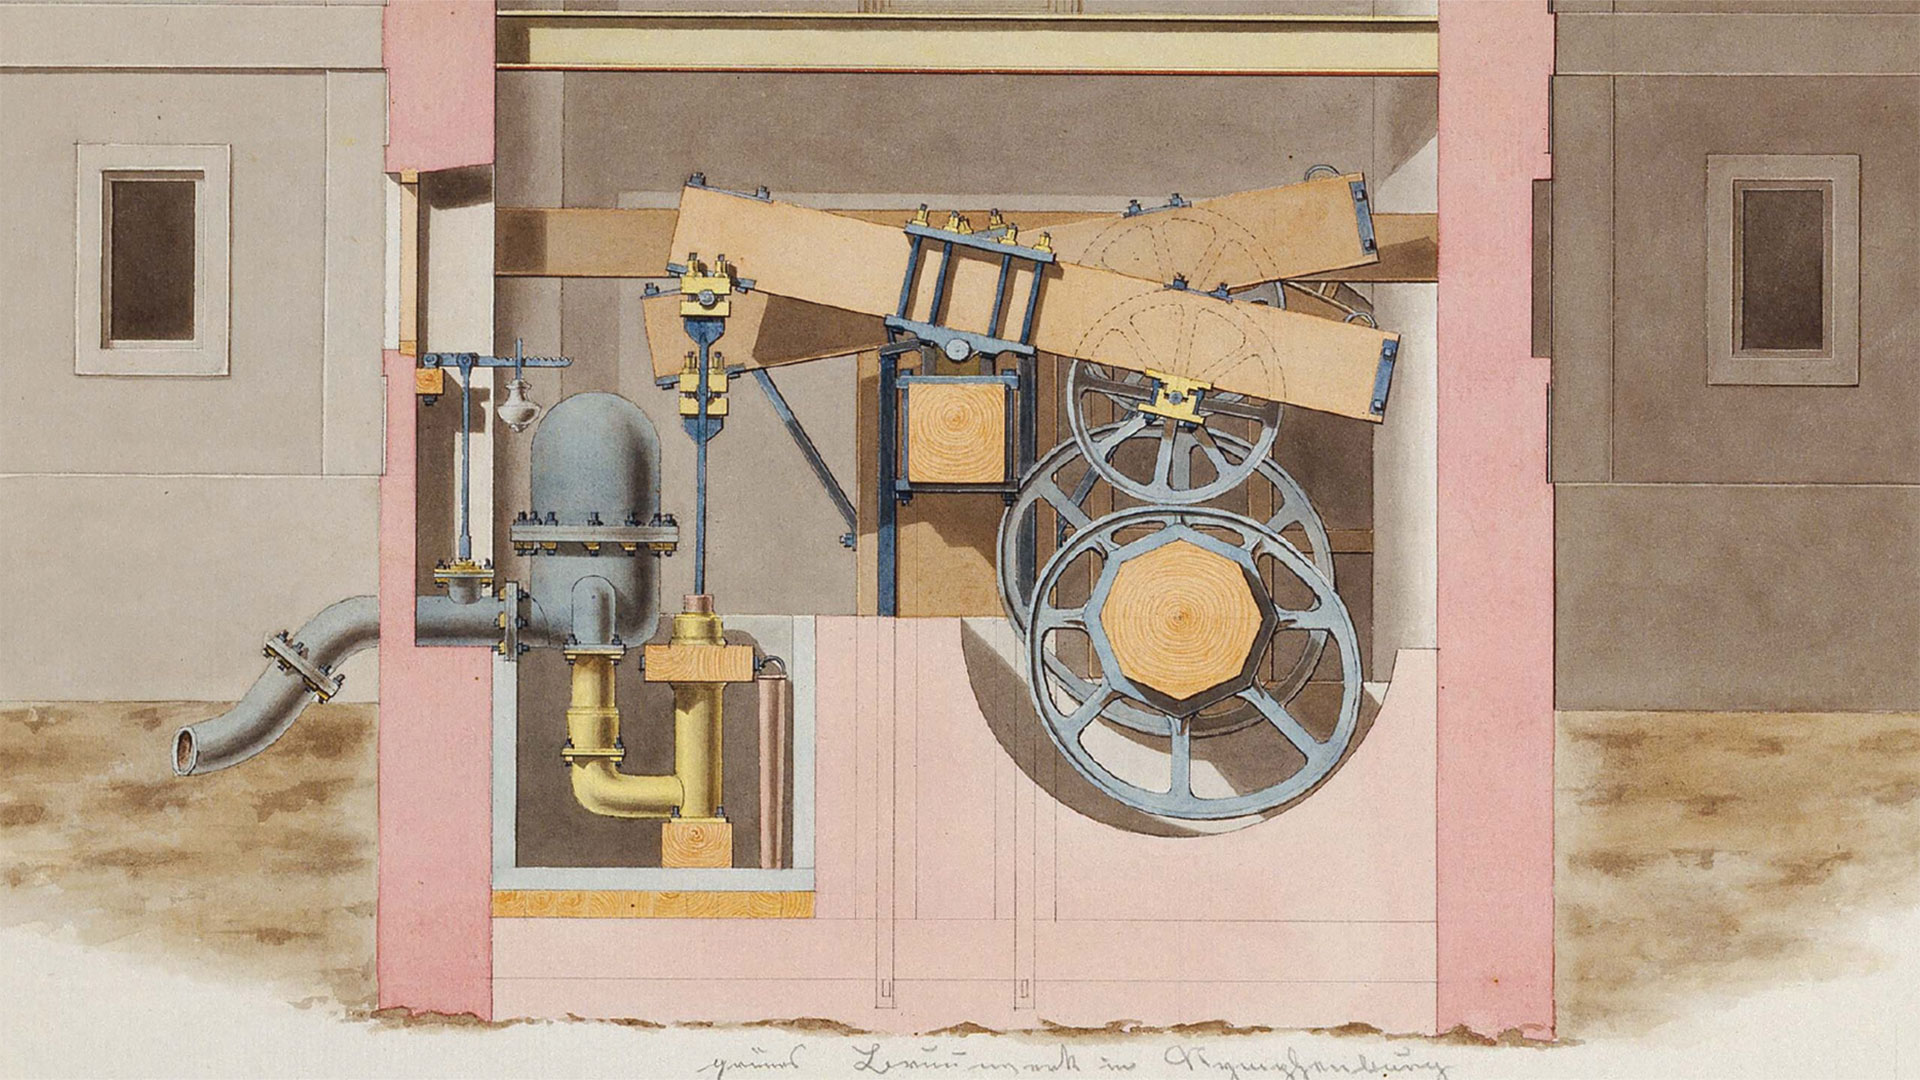 A section of Joseph von Baader's new hydraulic equipment for pumping water in the Royal Gardens in Nymphenburg, 1804 (Deutsches Museum)